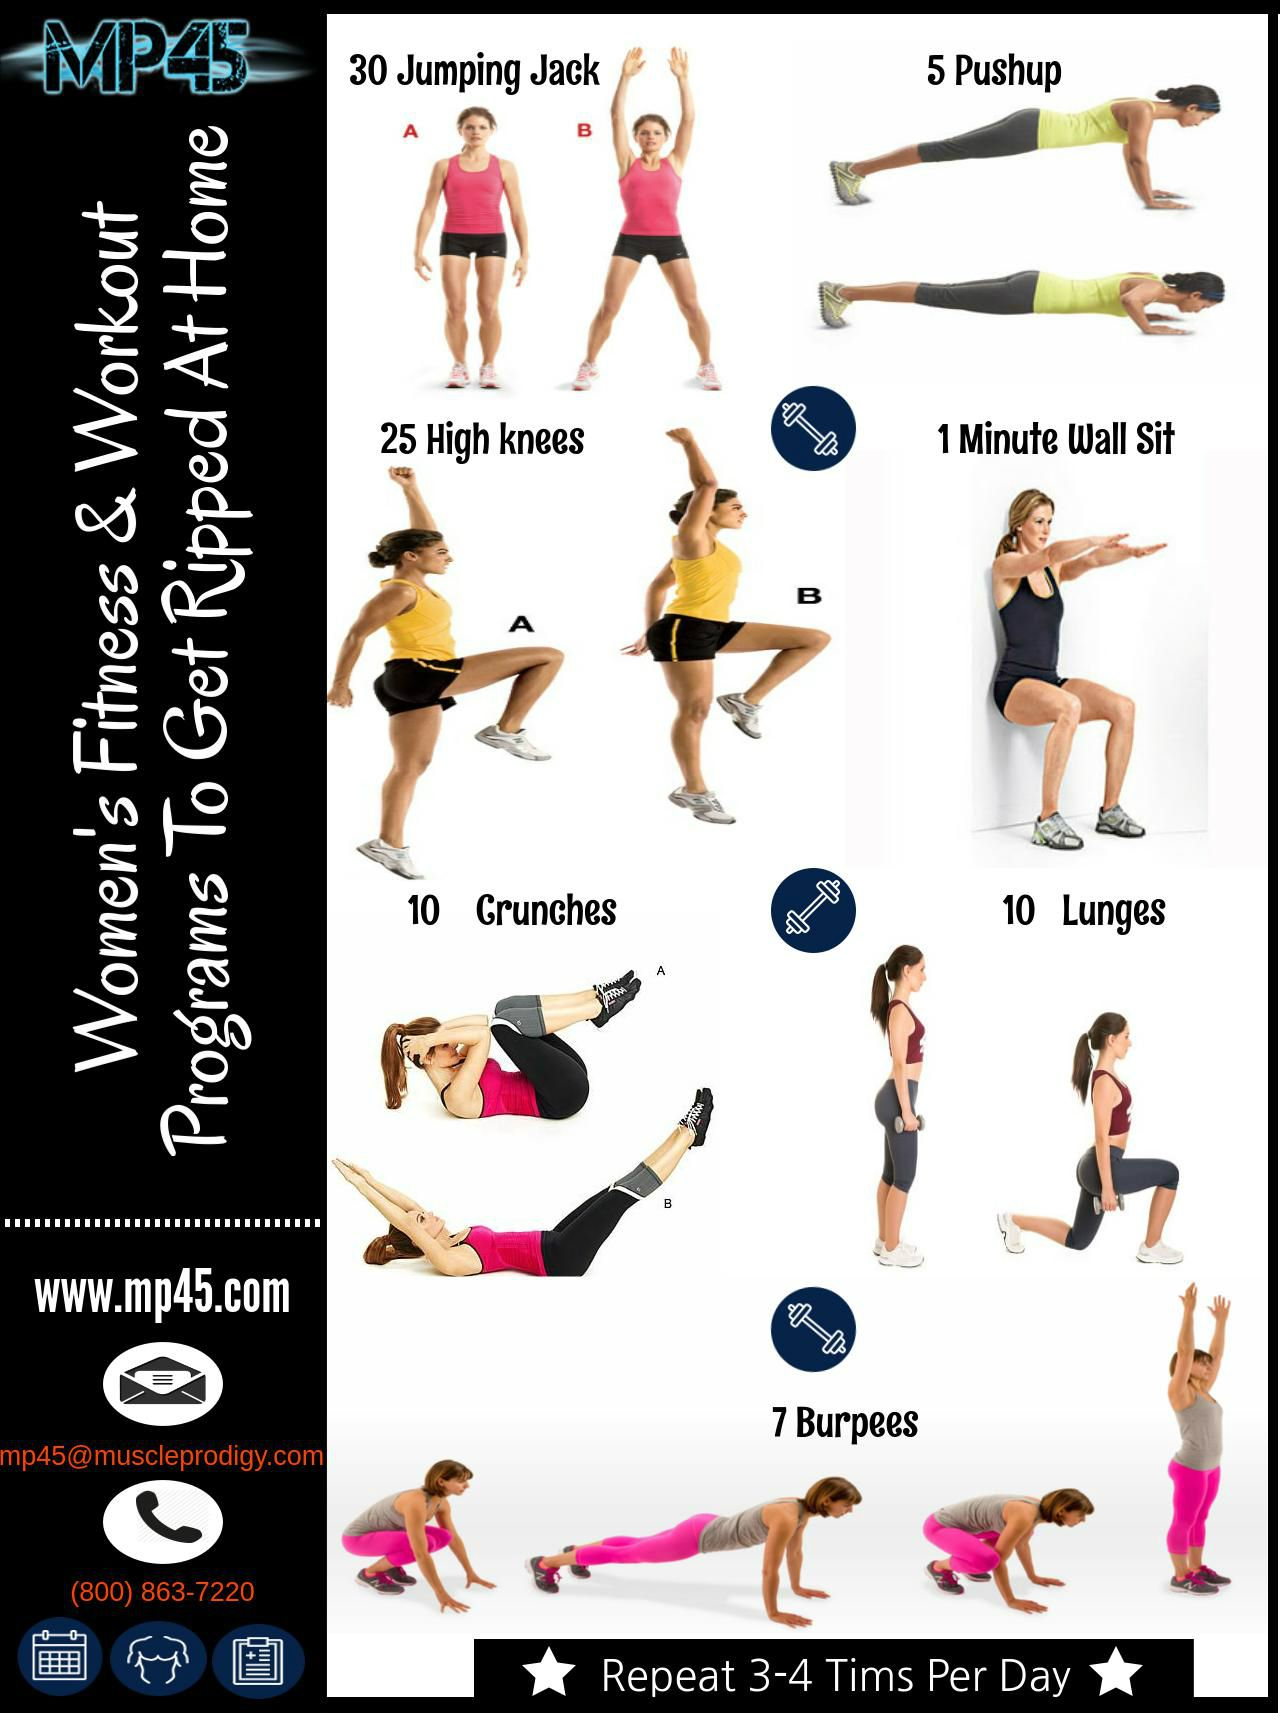 Follow These Top Exercises And Get Ripped Body At Home